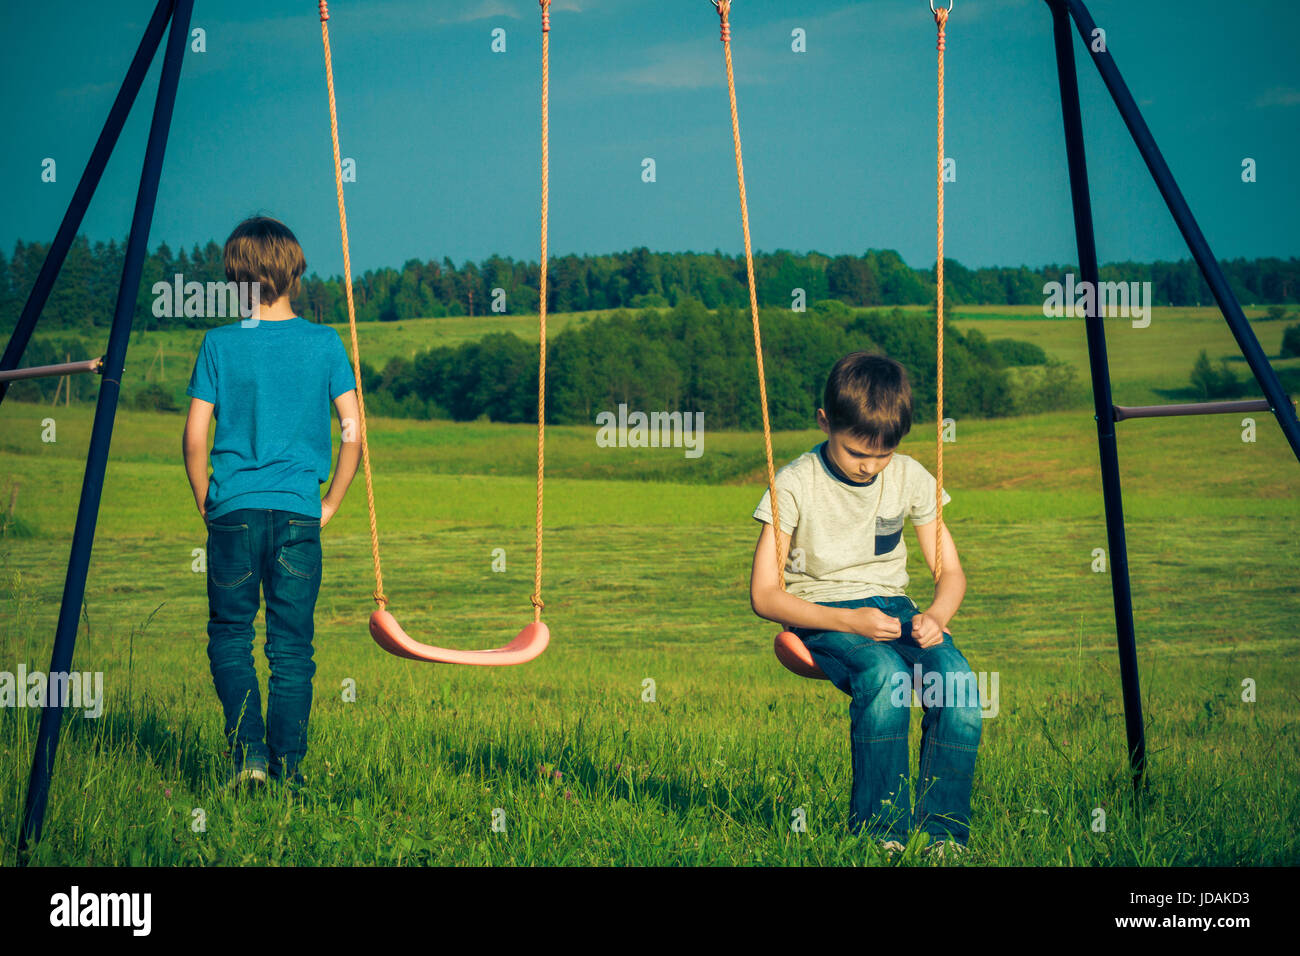 Kids relationship difficulties. Child falls out with a friend outdoors - Stock Image